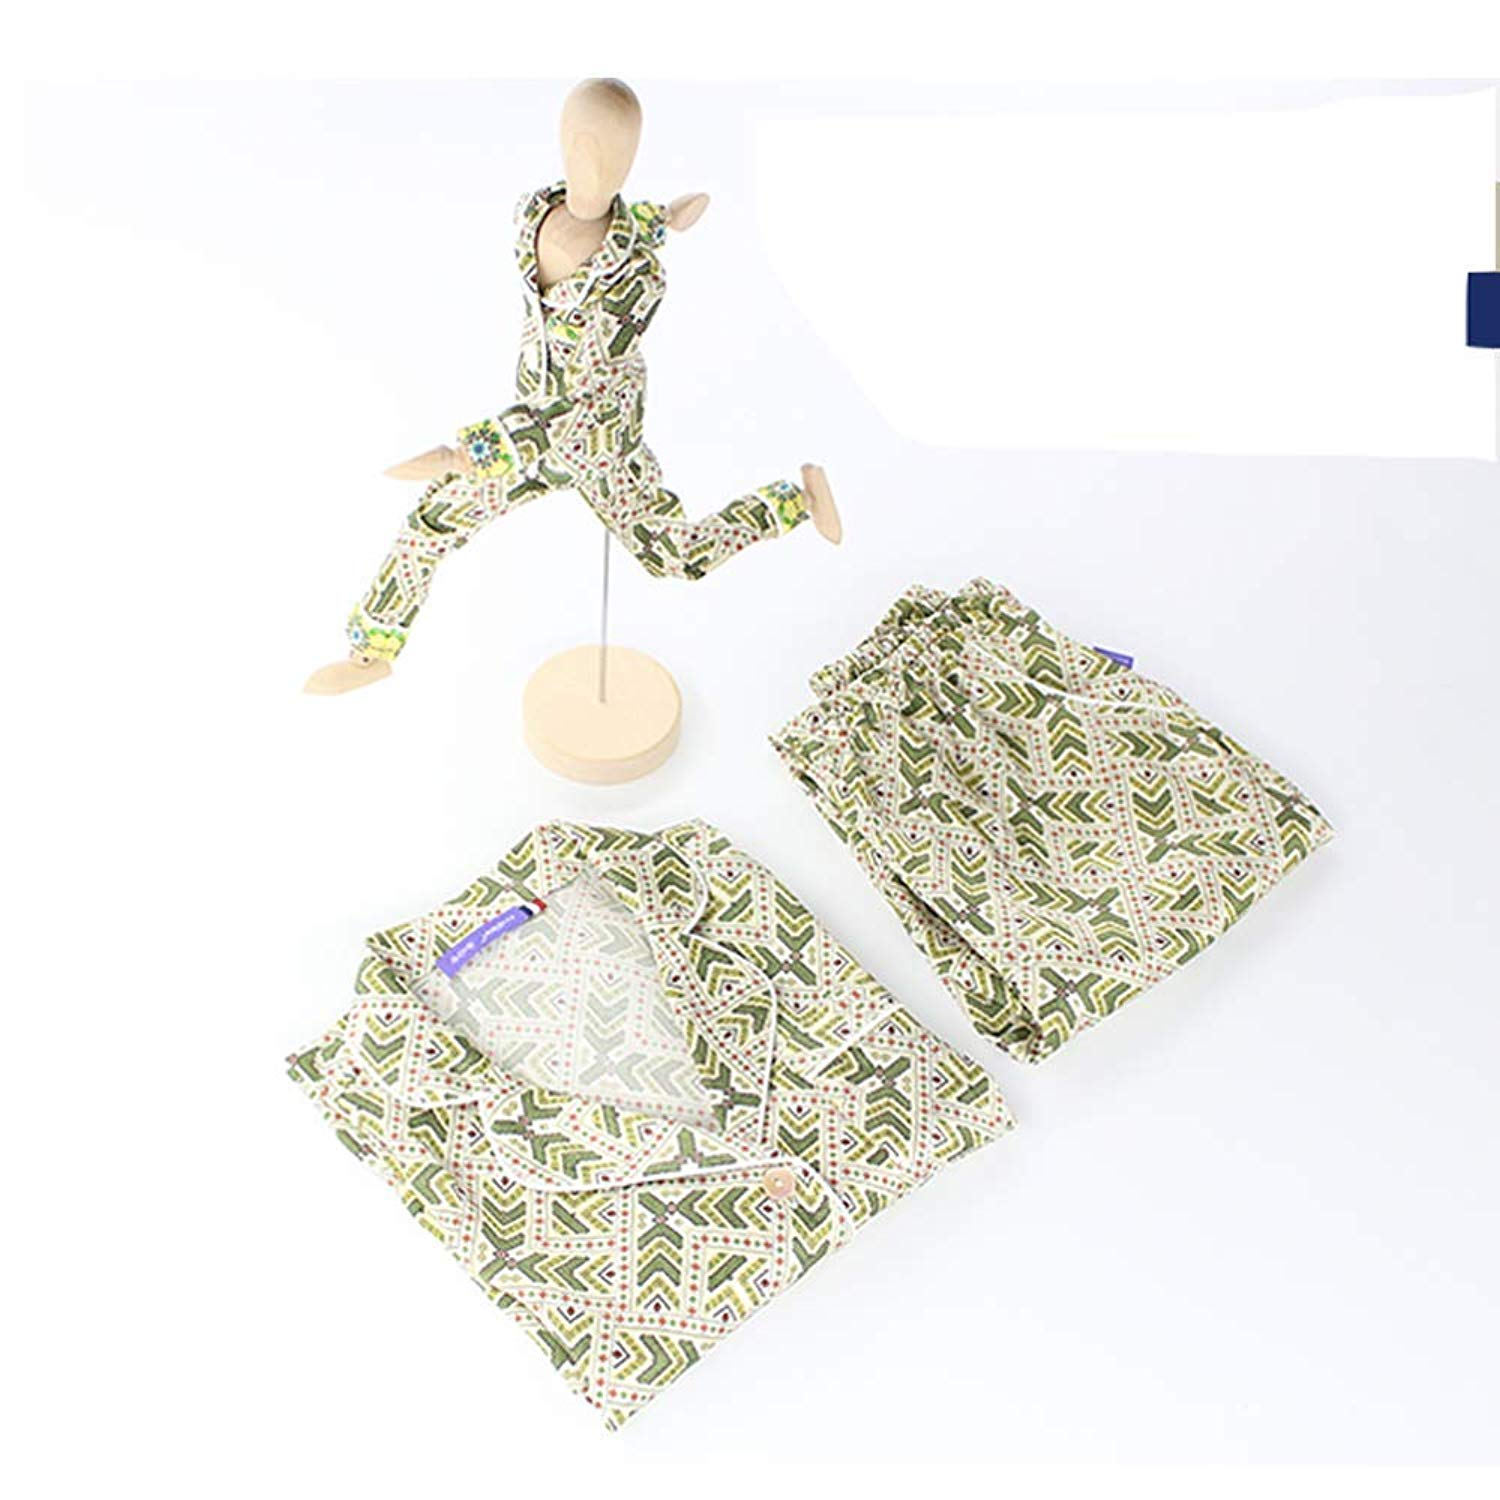 045ee3e474 Get Quotations · Printed Silk Children s Pajamas Set Geometry Silk Baby Home  Service Gift Box Silk Children s Pajamas